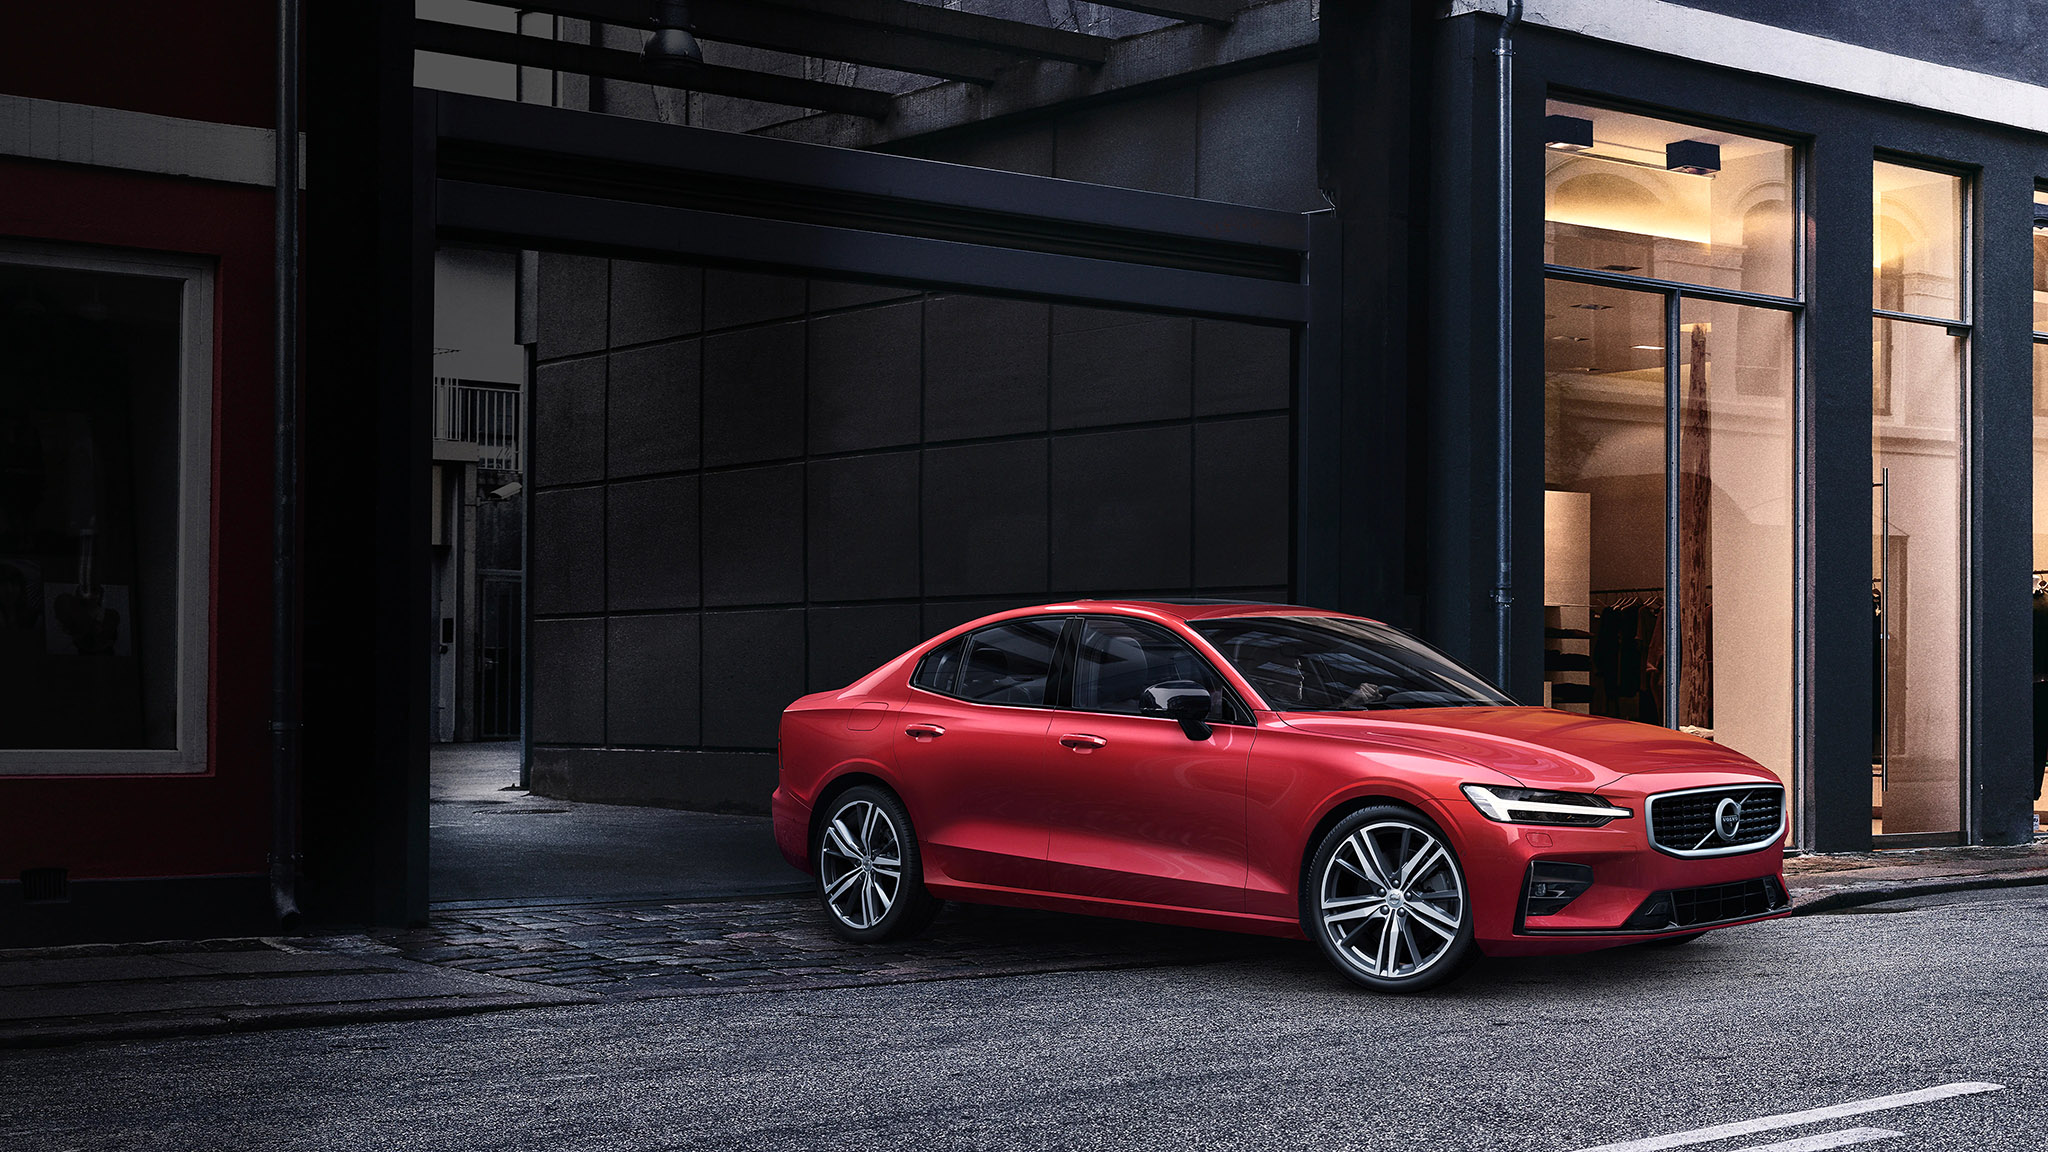 The All-New Volvo S60 Image